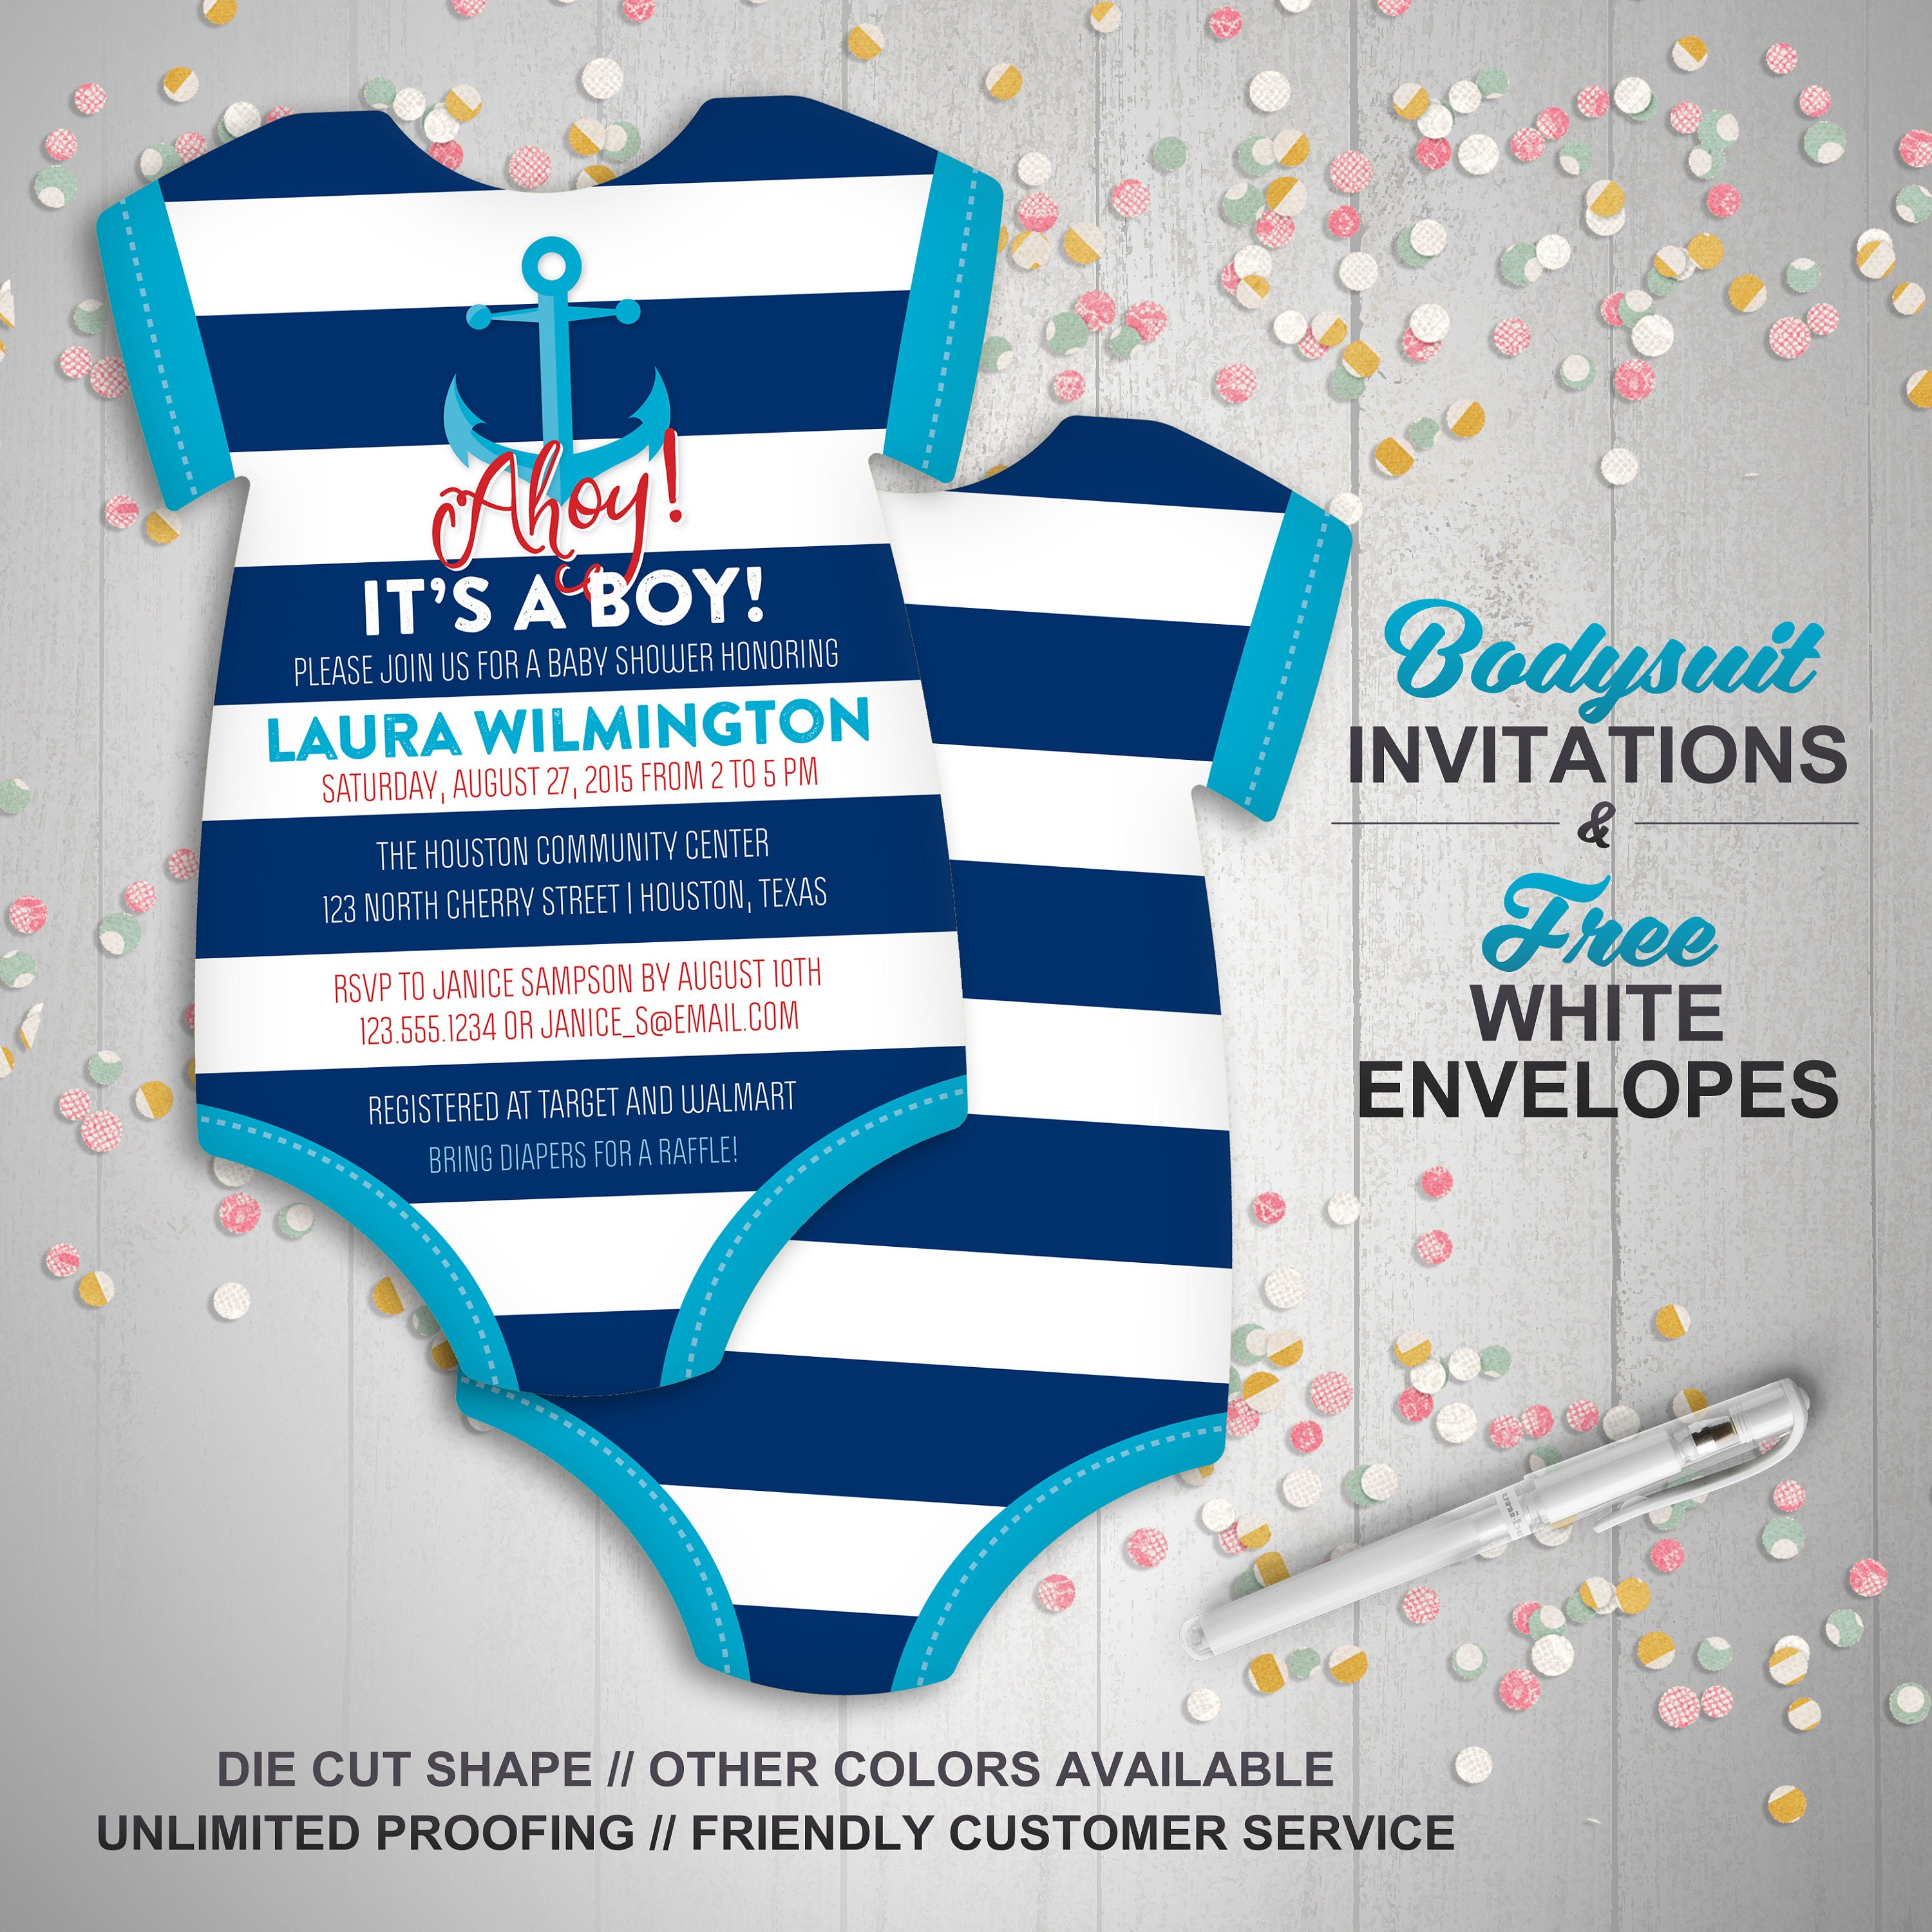 10 Anchor Baby Shower Invitations Sailor Nautical invite